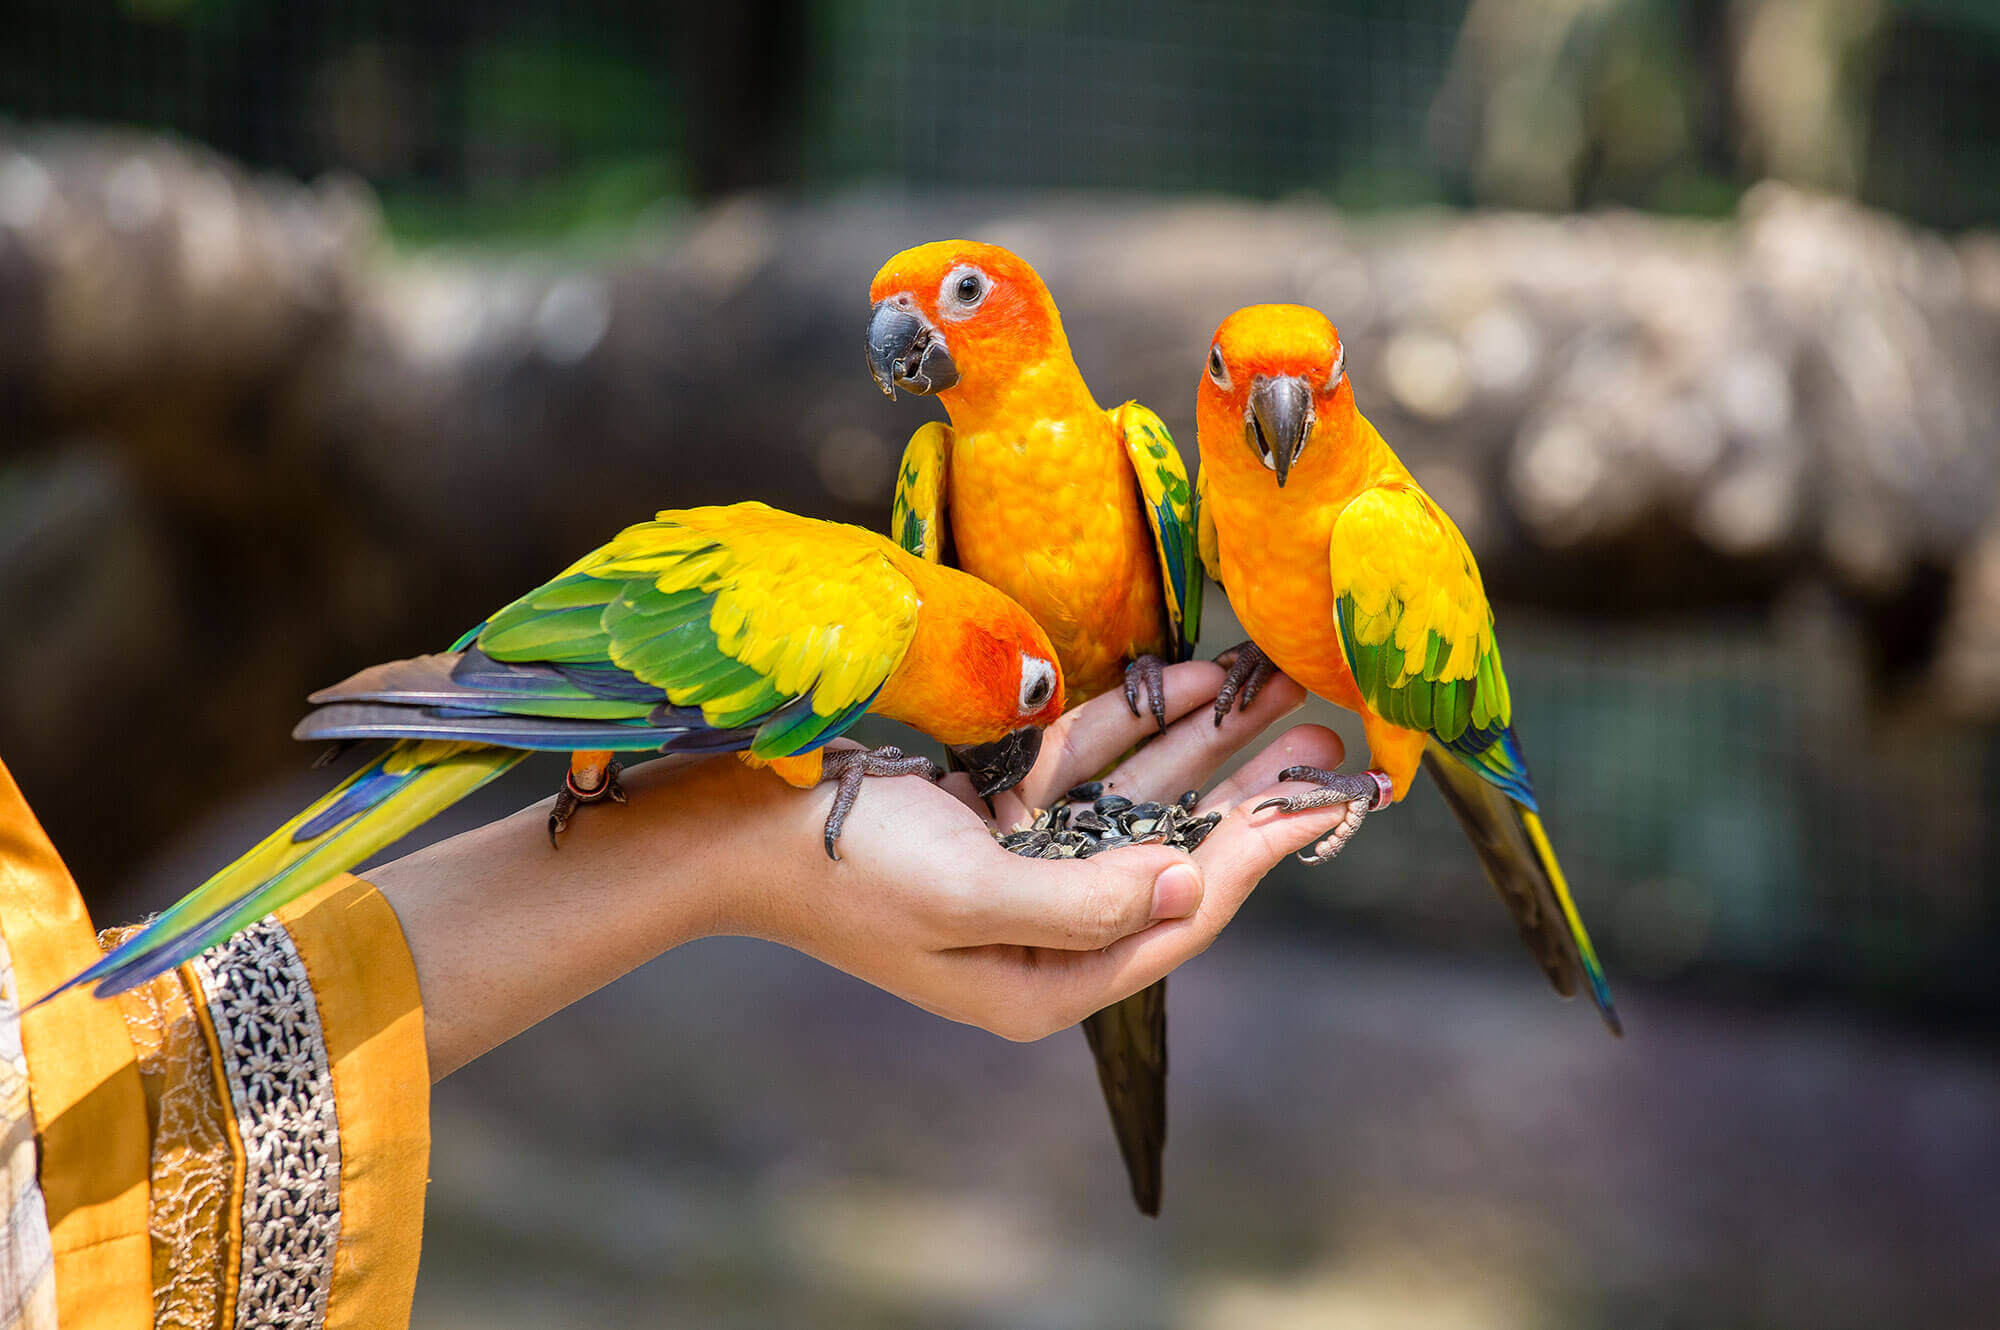 colorful birds in a hand